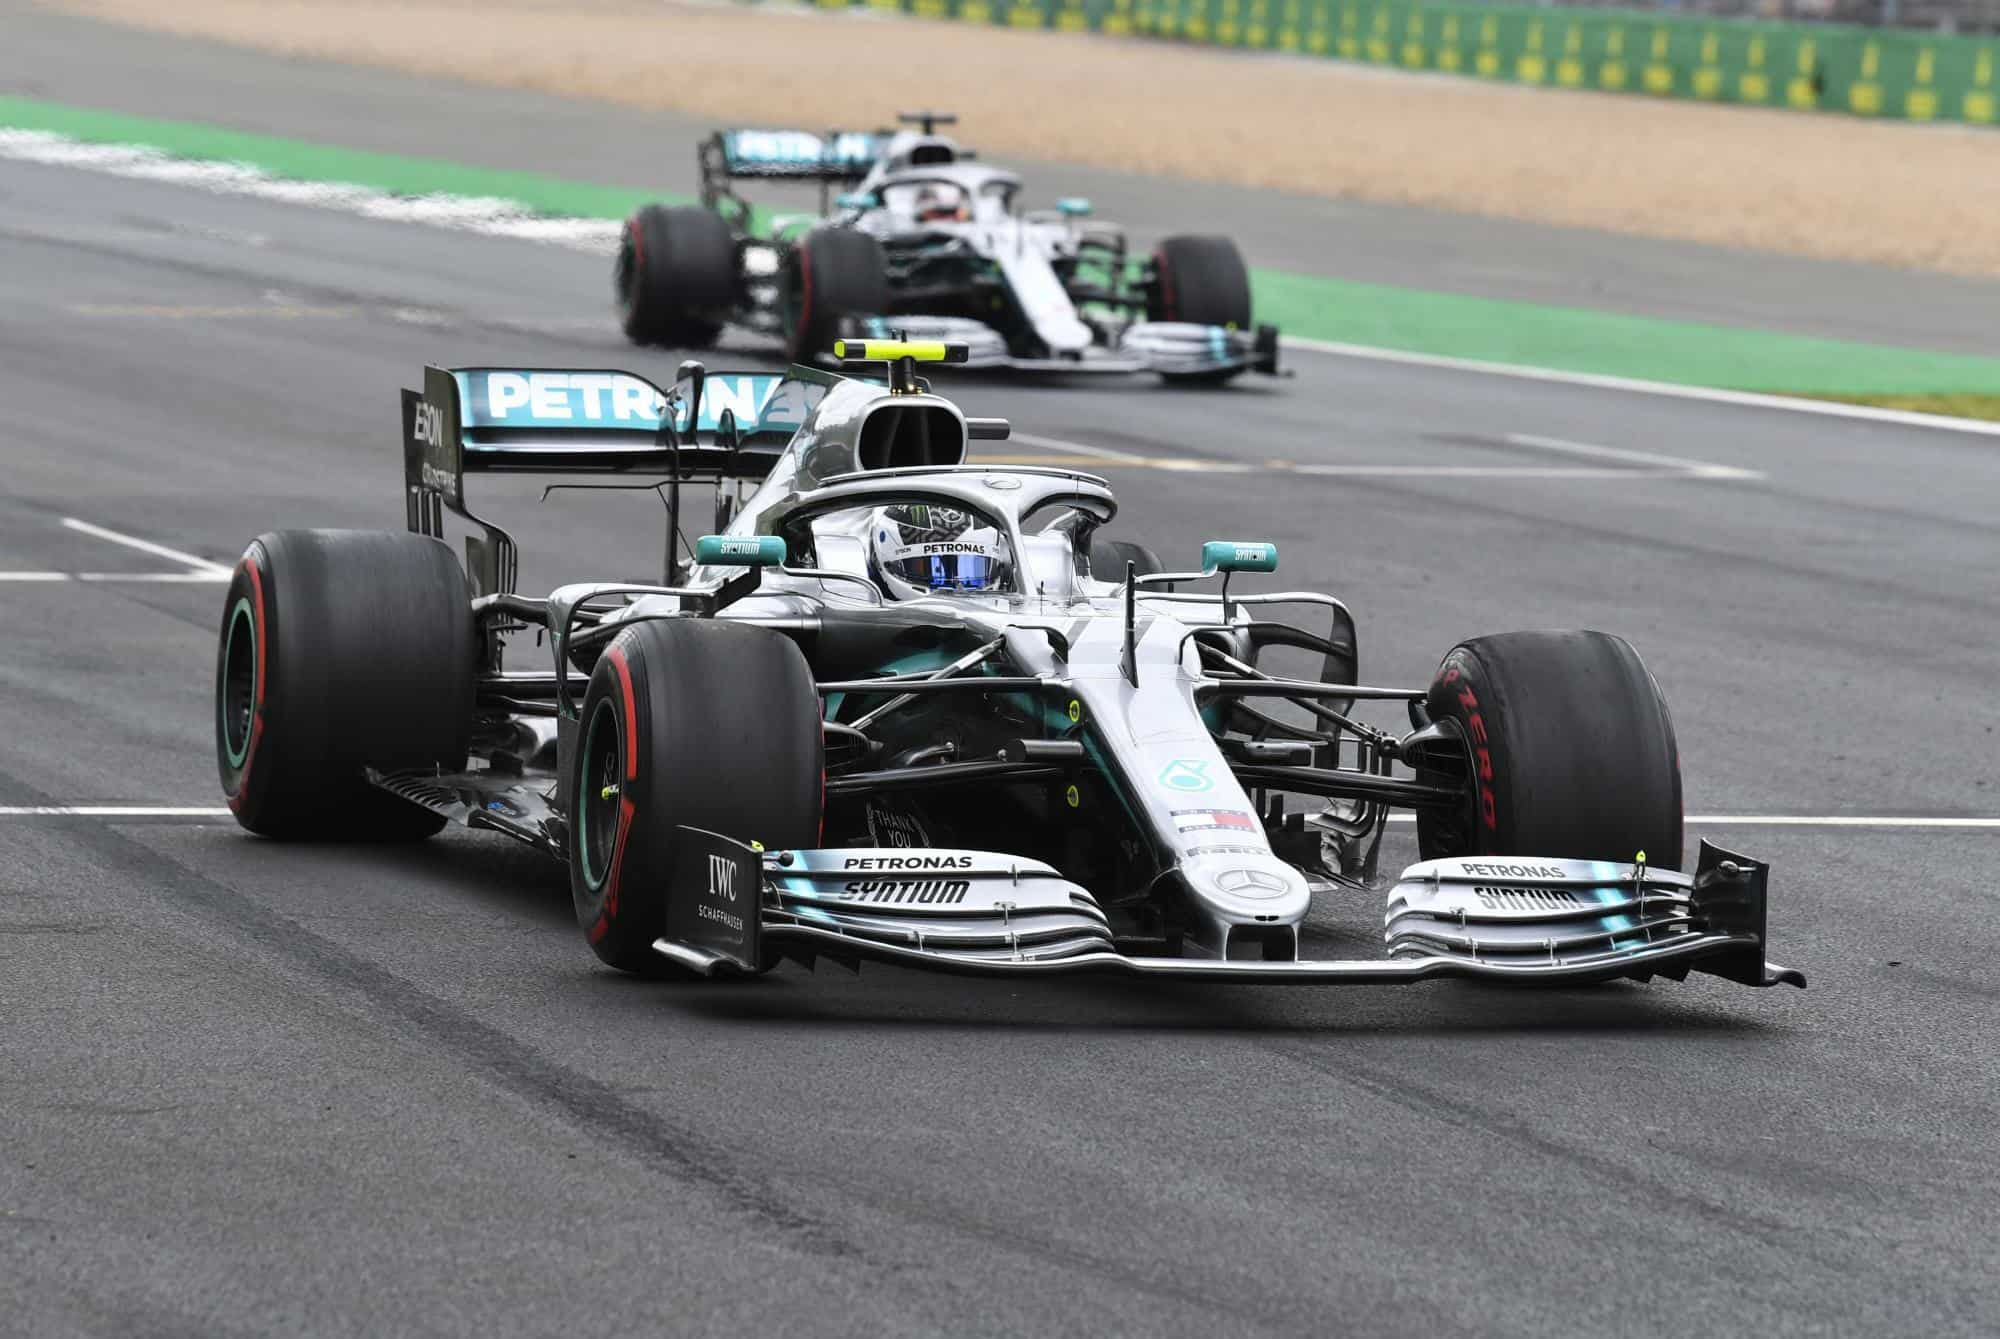 Bottas and Hamilton Mercedes British GP F1 2019 Photo Daimler